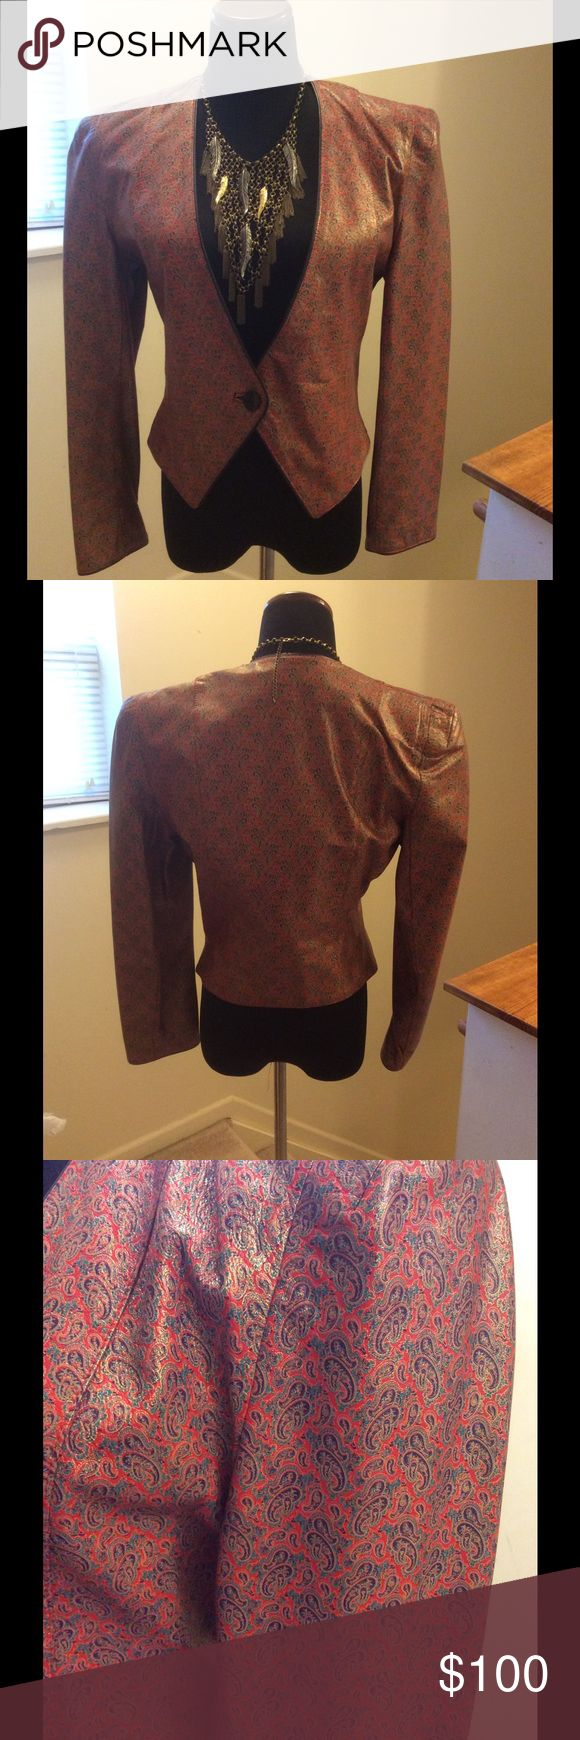 Carlos Falchi Vintage crop leather jacket Red paisley print vintage leather jacket made in Italy very rare. Carlos Falchi Jackets & Coats Blazers